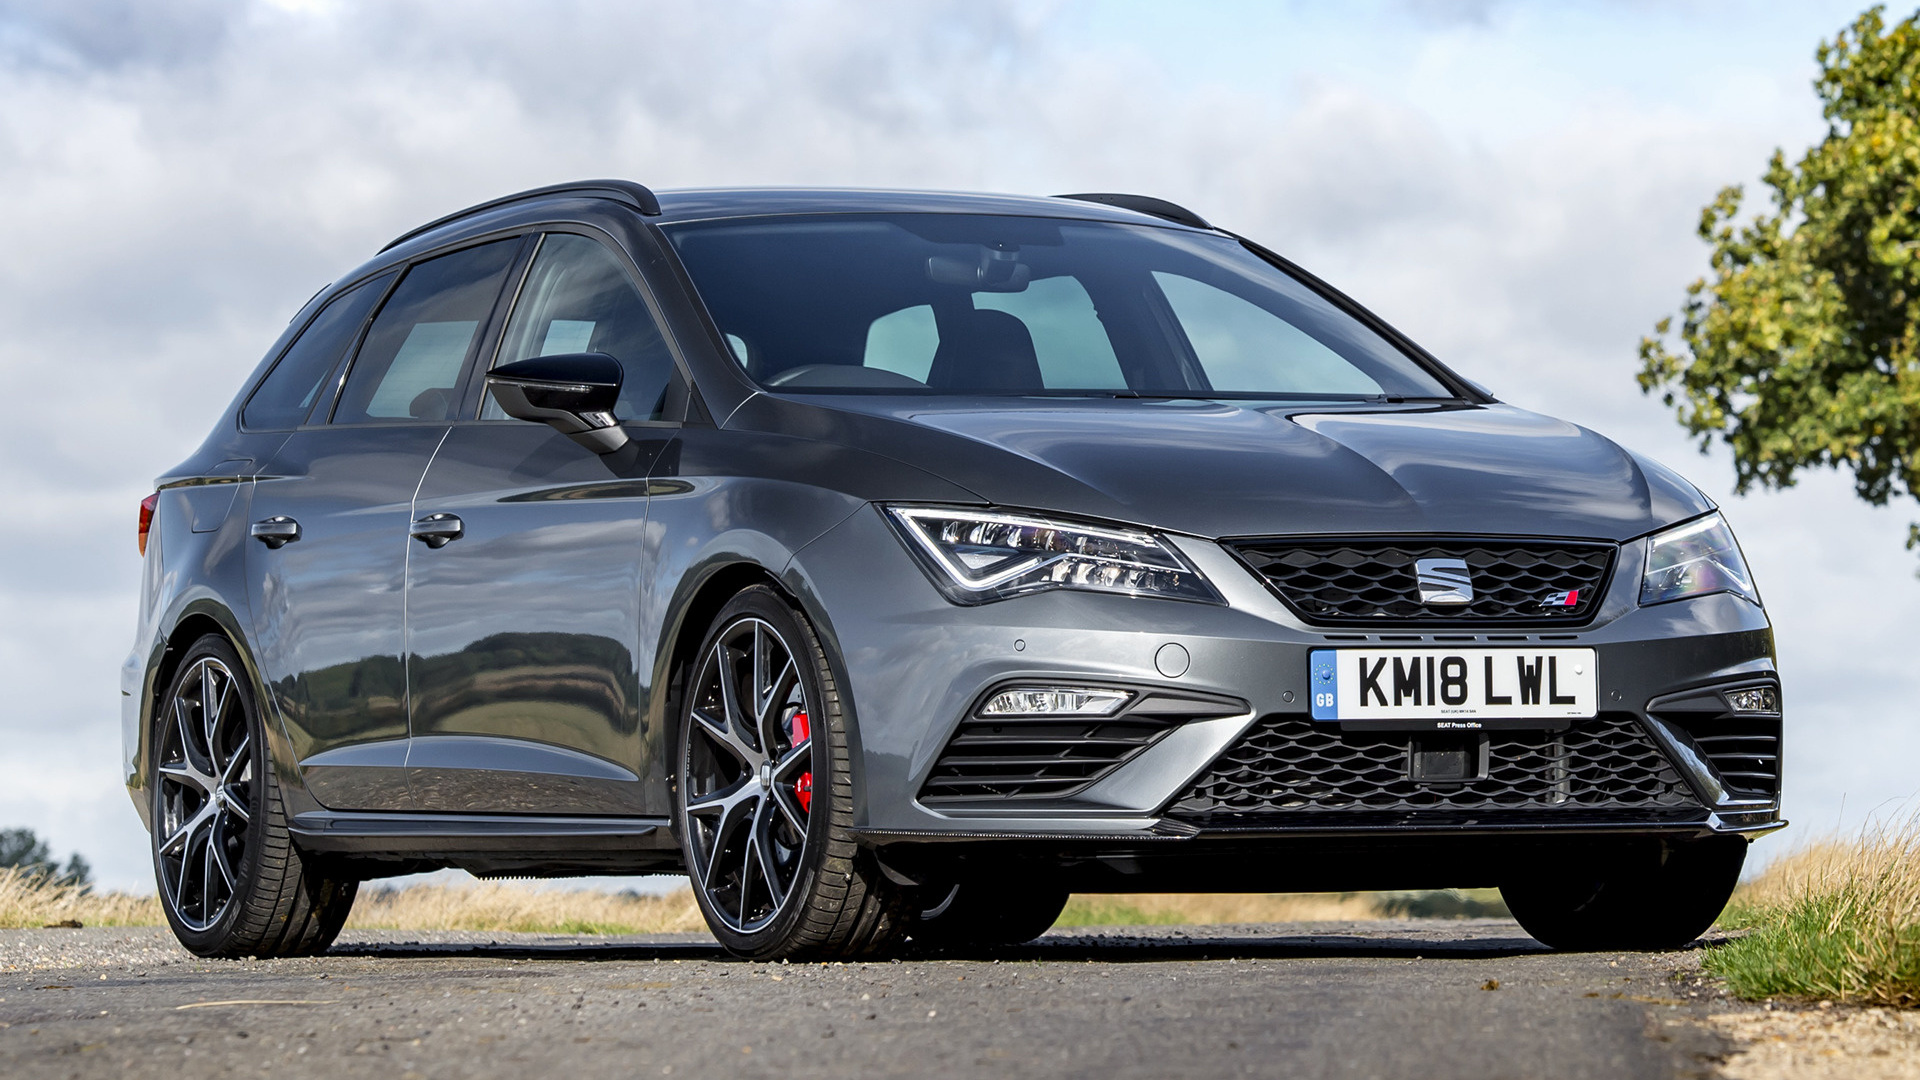 2018 seat leon st cupra 300 carbon edition uk. Black Bedroom Furniture Sets. Home Design Ideas